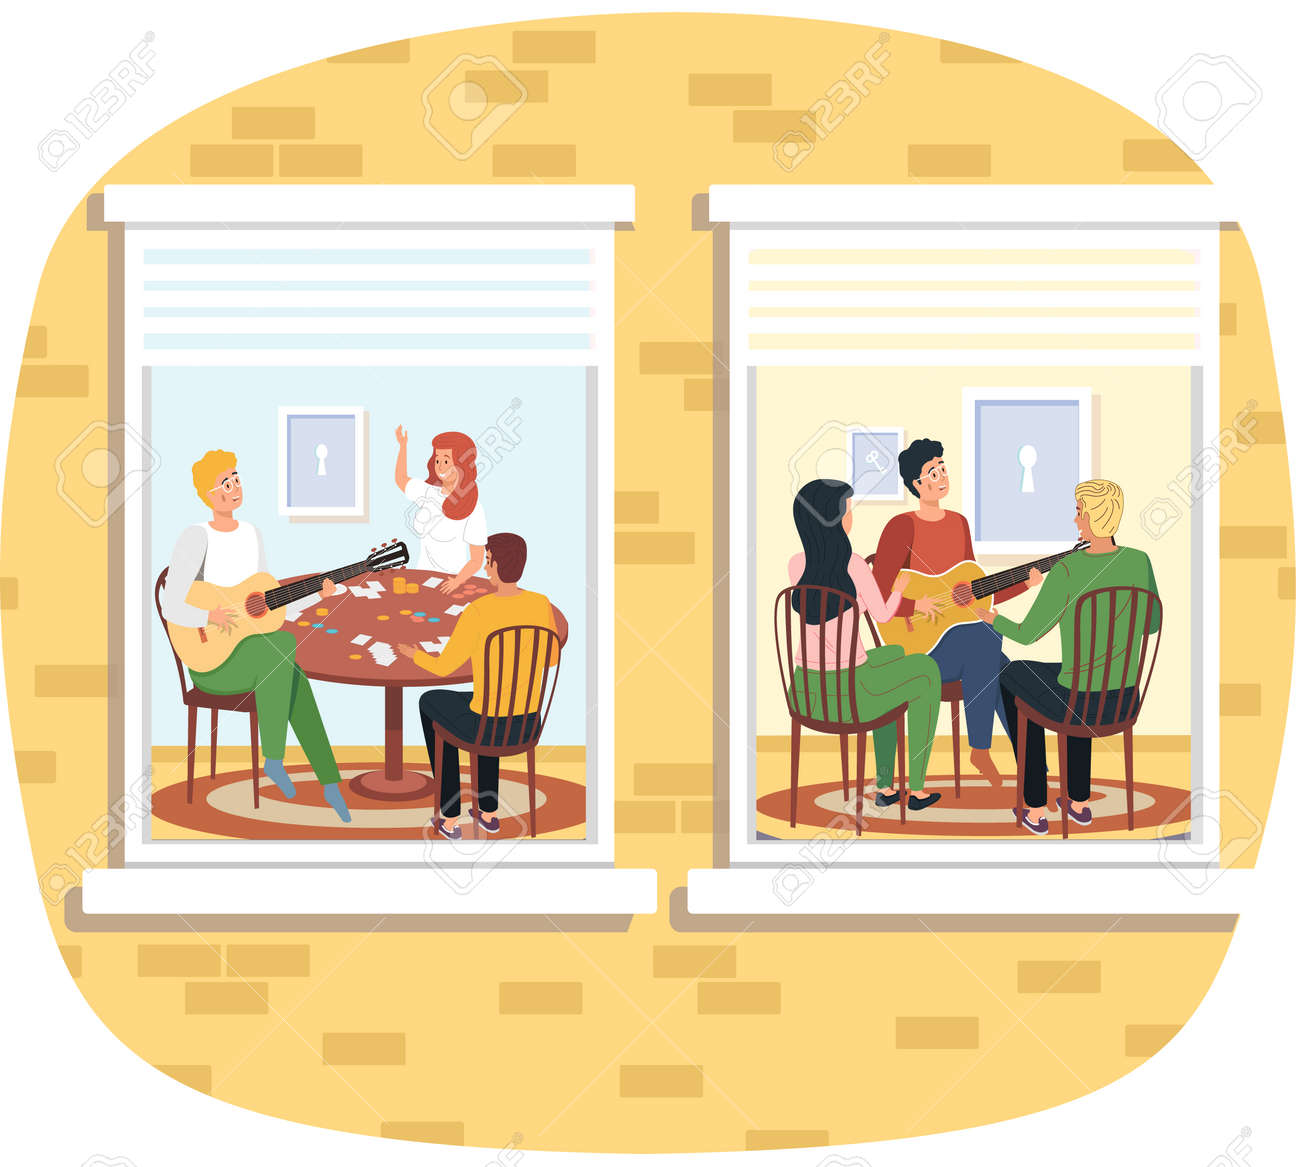 Group of people sing songs and play guitar sitting in apartment. social isolation, quarantine concept. Young men, group of friends musicians relax playing musical instruments stay at home - 163022268